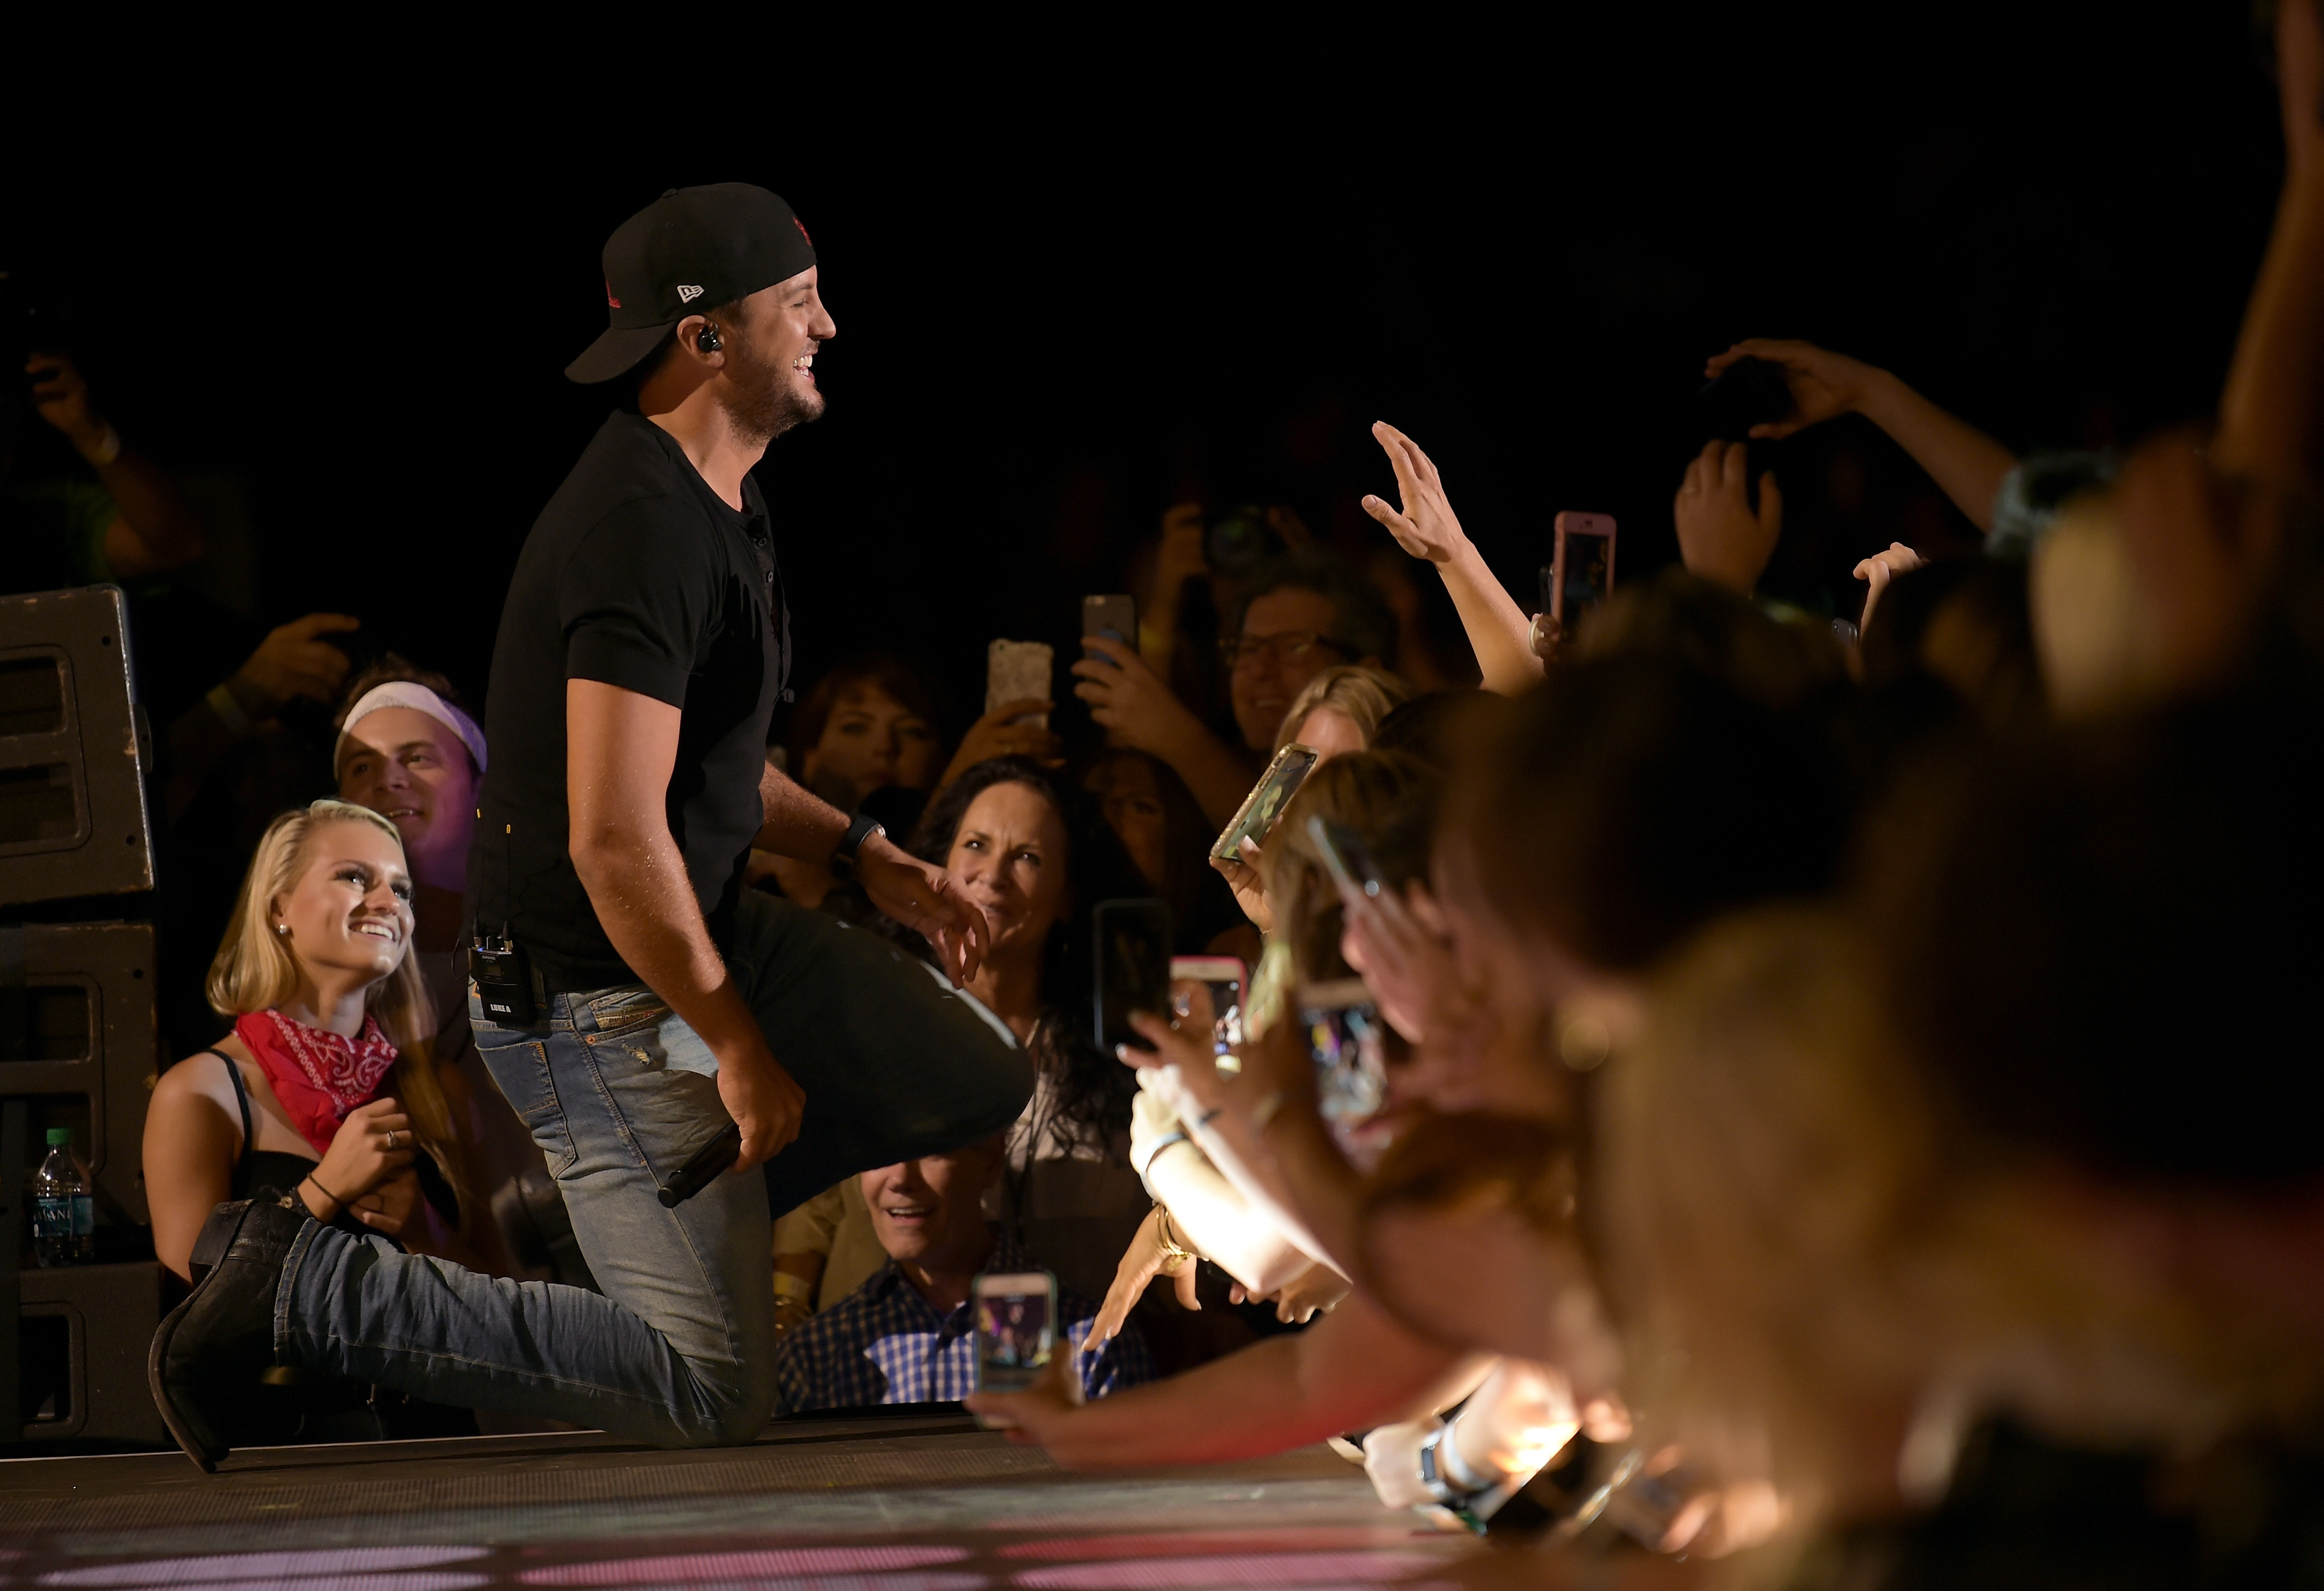 CMA Fest stadium concert highlights from Nashville